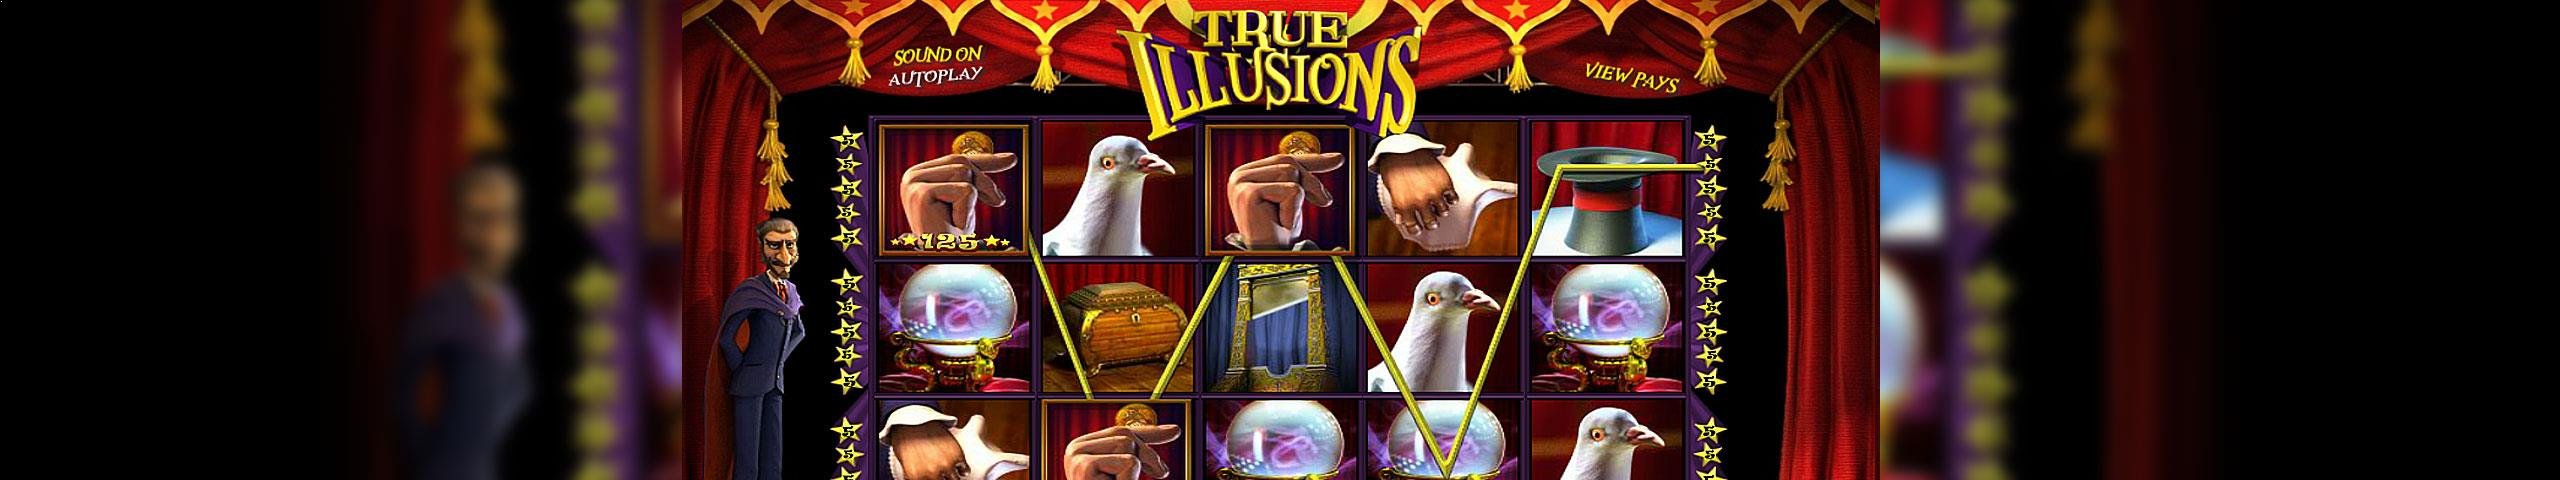 True Illusions Betsoft jocuri slot slider